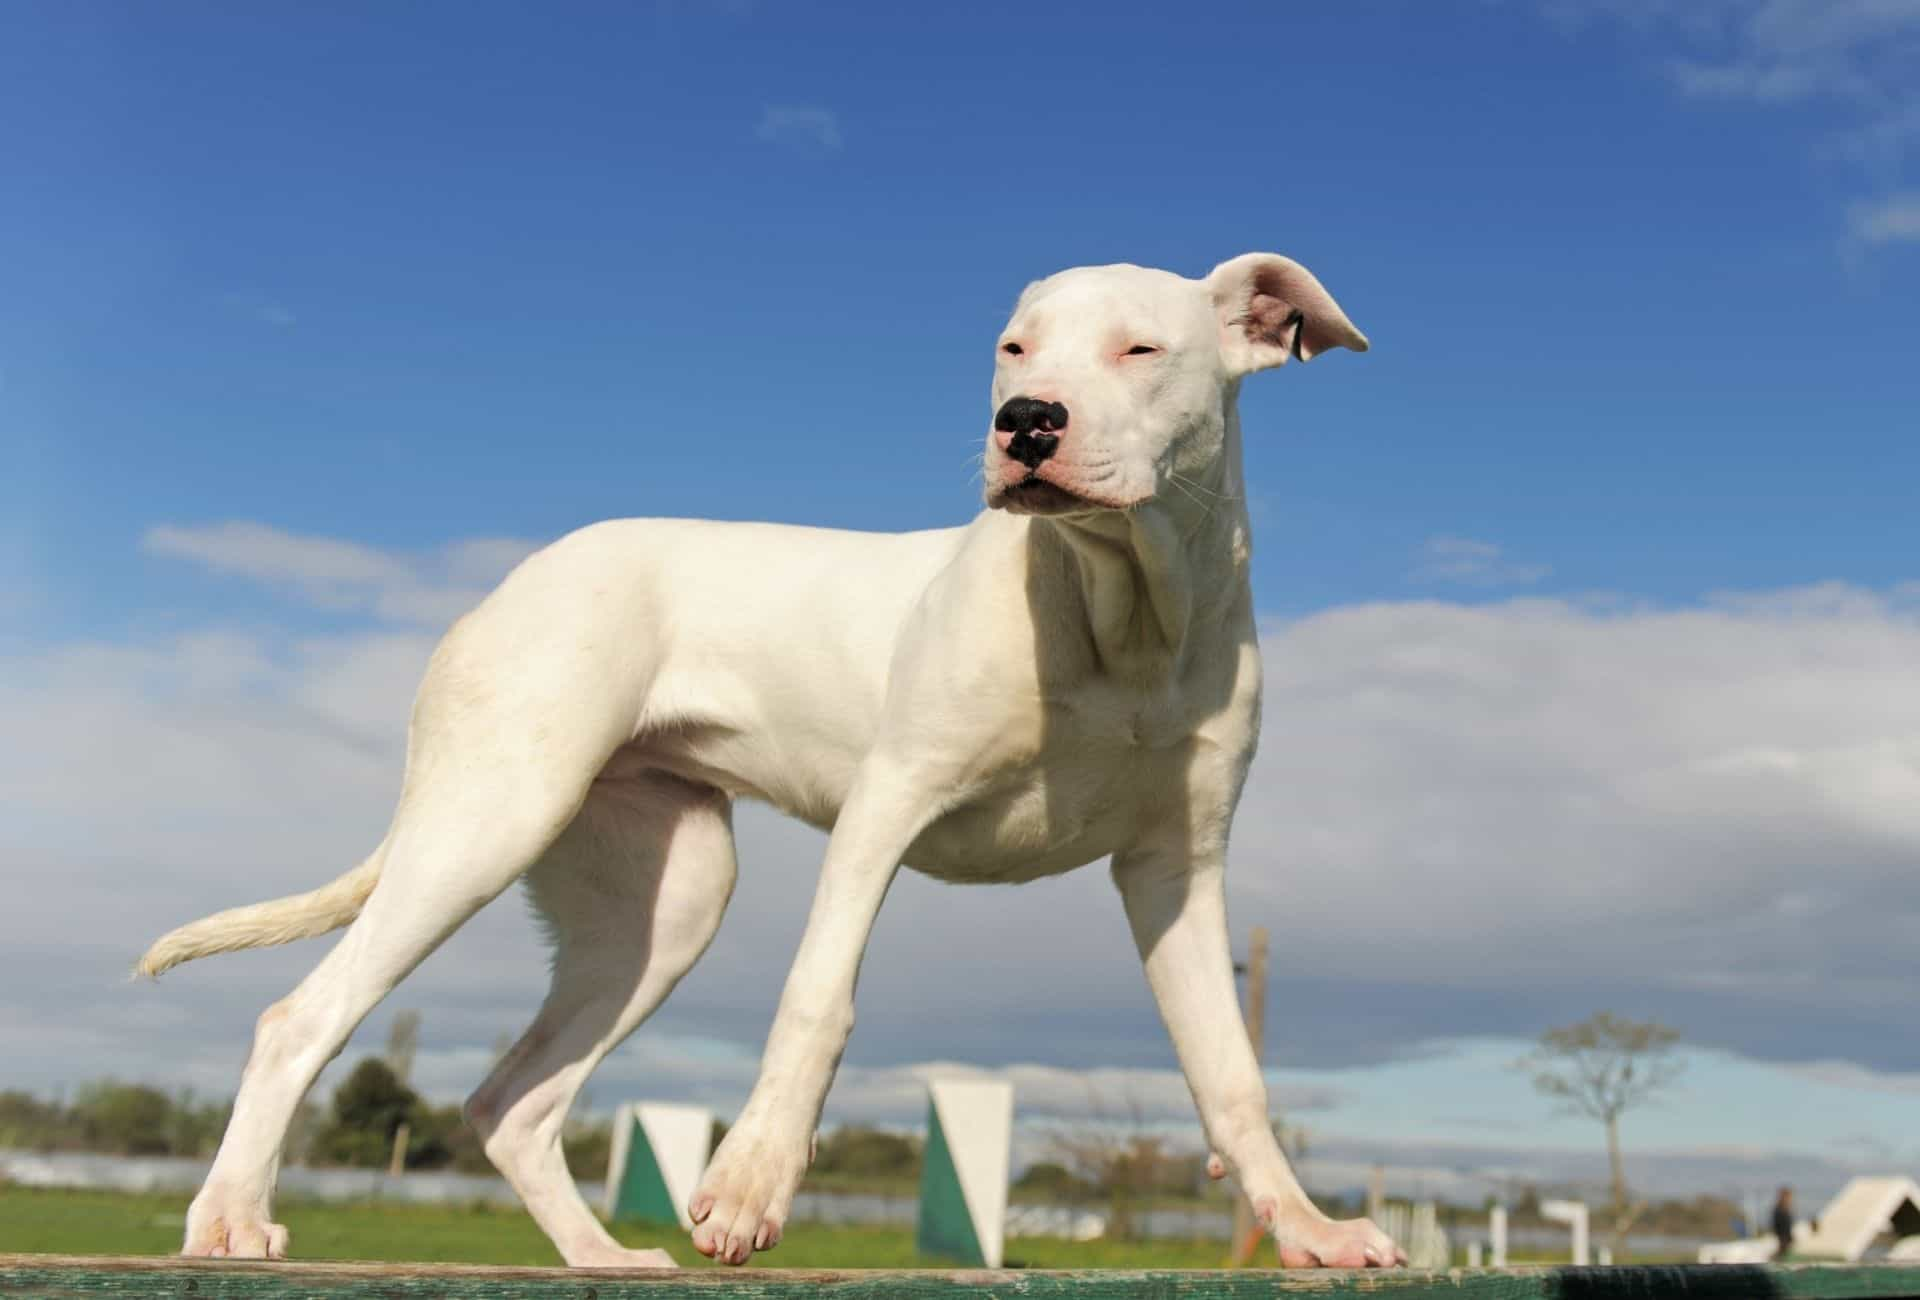 White Dogo Argentino with a black nose squinting his eyes.